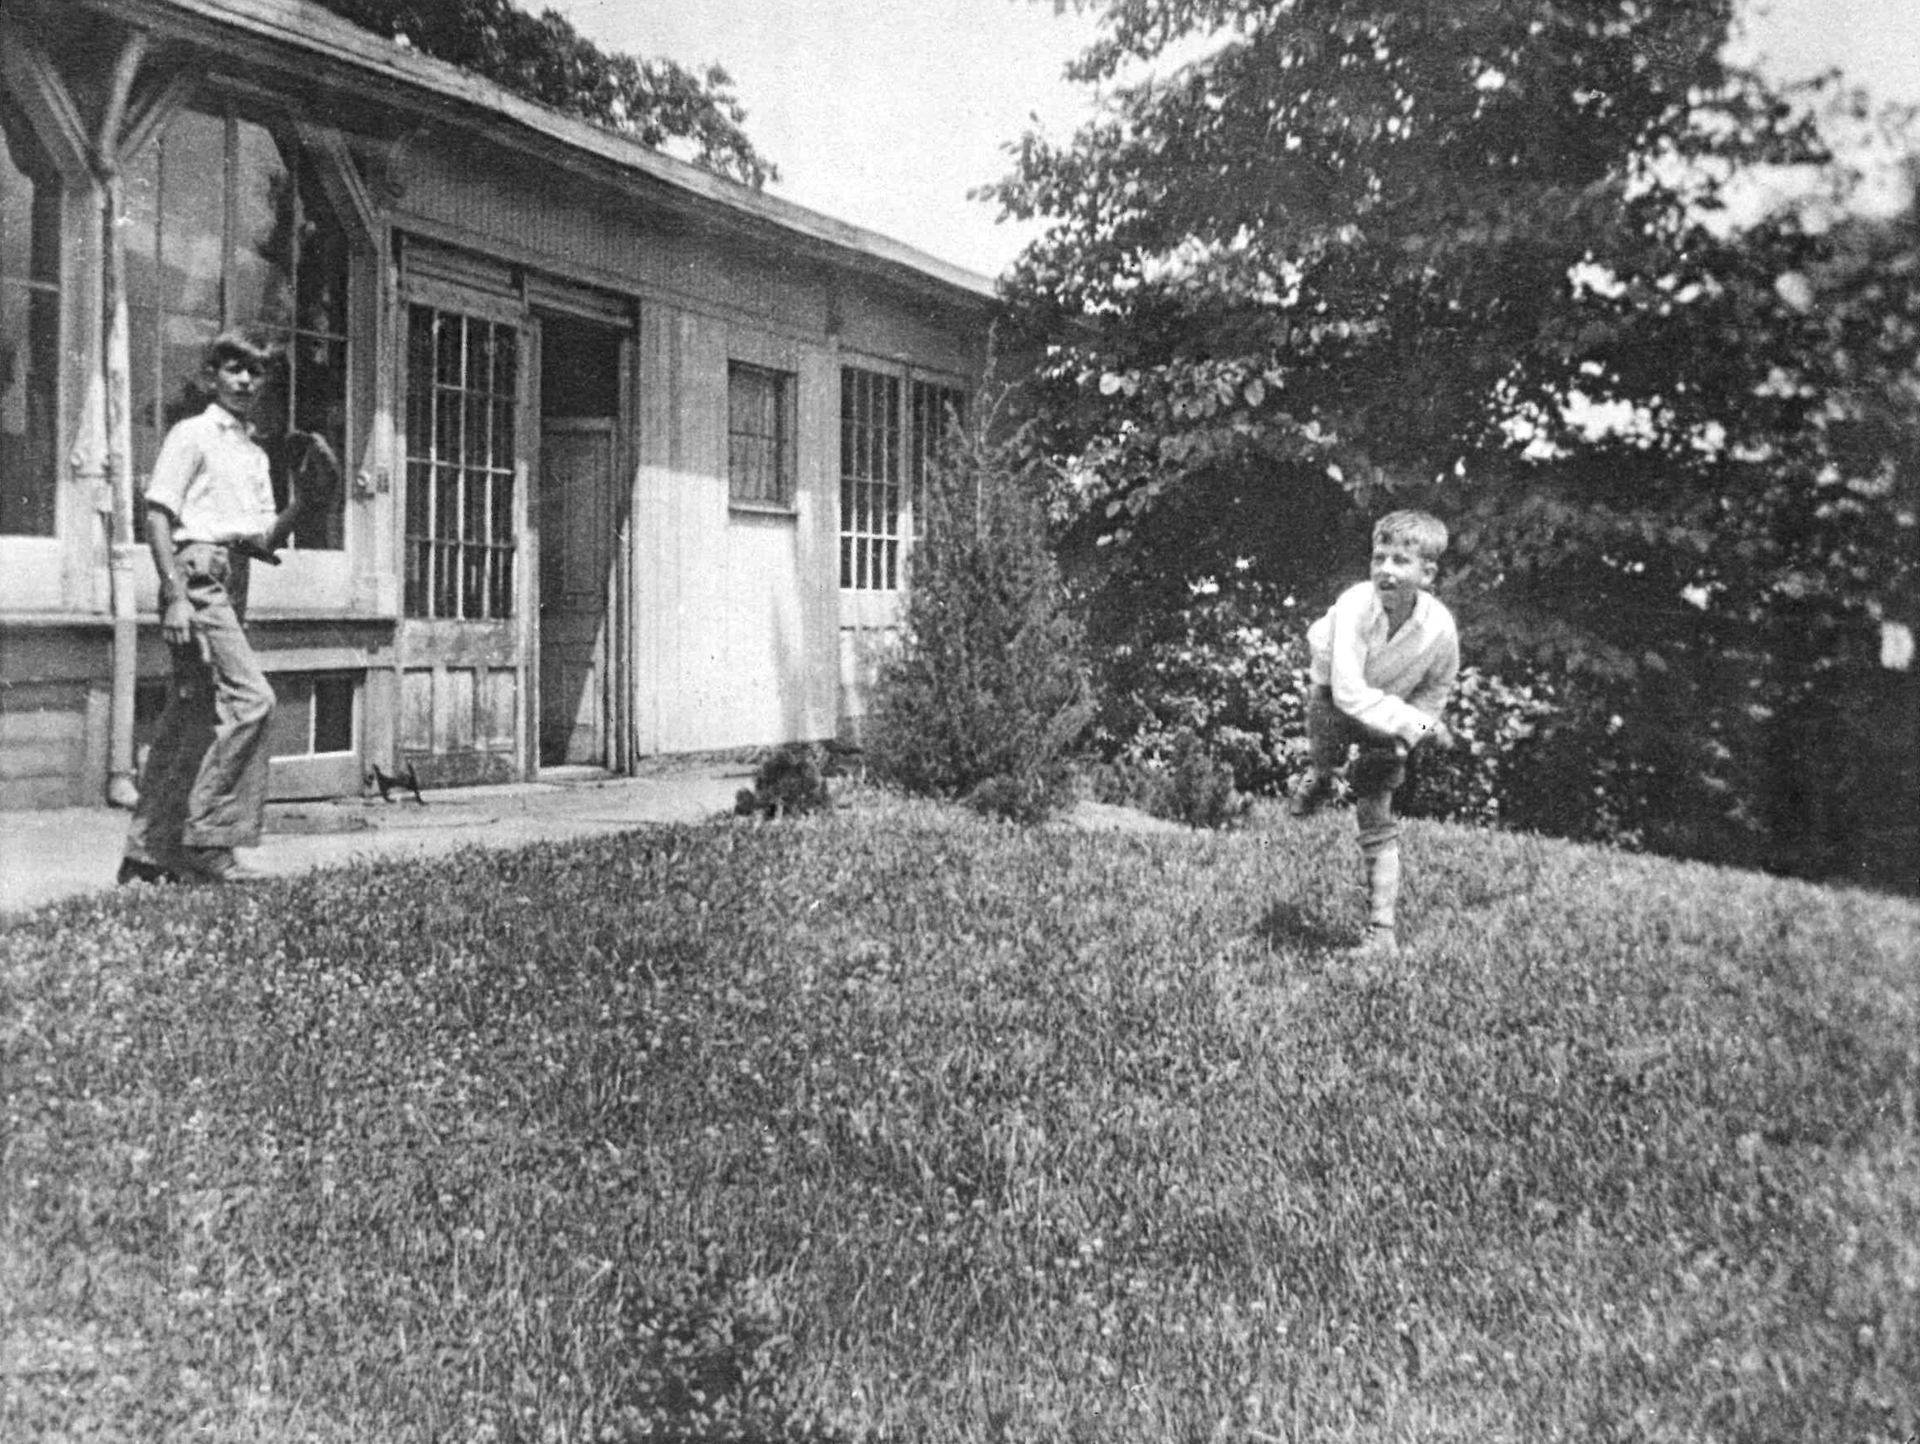 Children playing on the lawn near the Devou home c. 1920